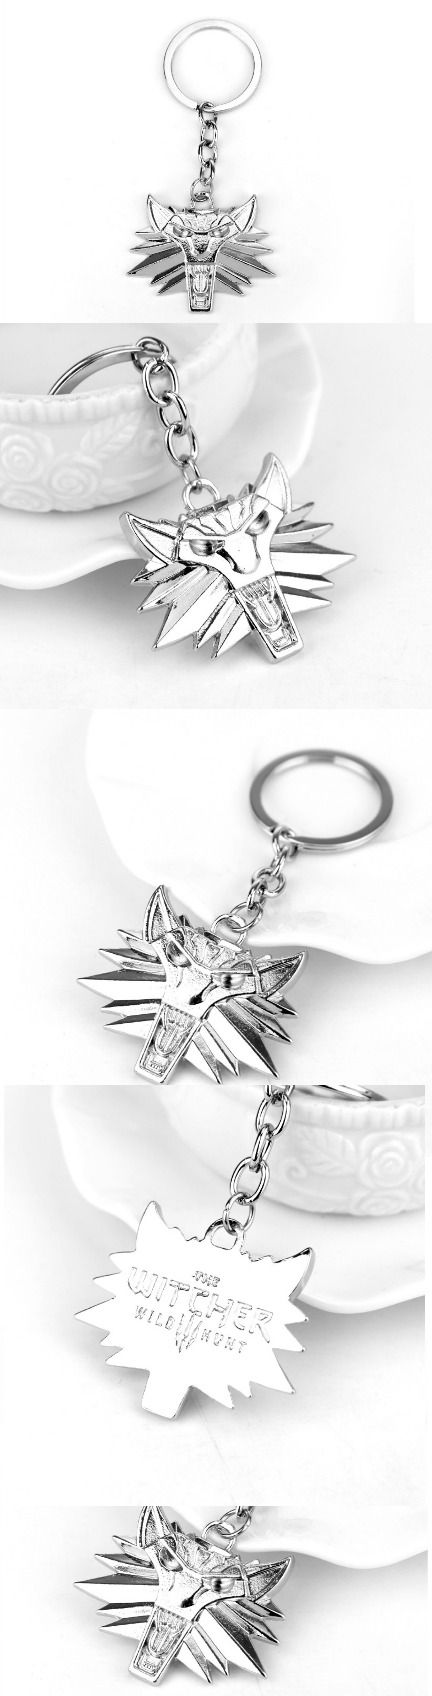 The Witcher 3 Wild Hunt Medallion Keychain! Click The Image To Buy It Now or Tag Someone You Want To Buy For. #Hunting